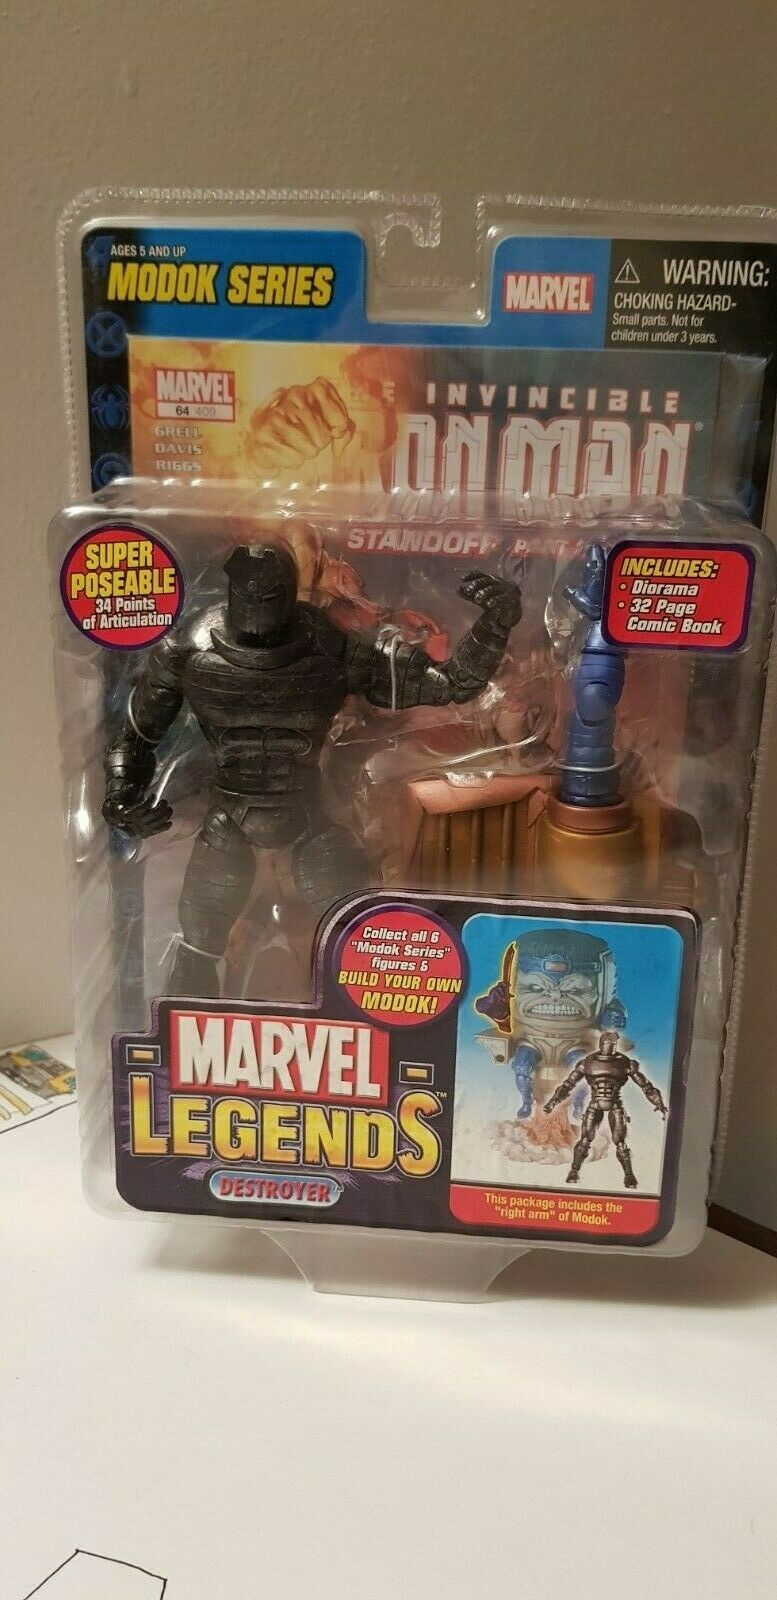 MARVEL LEGENDS DESTROYER modok baf Juguete biz civil universe hasbro NEW wave lee